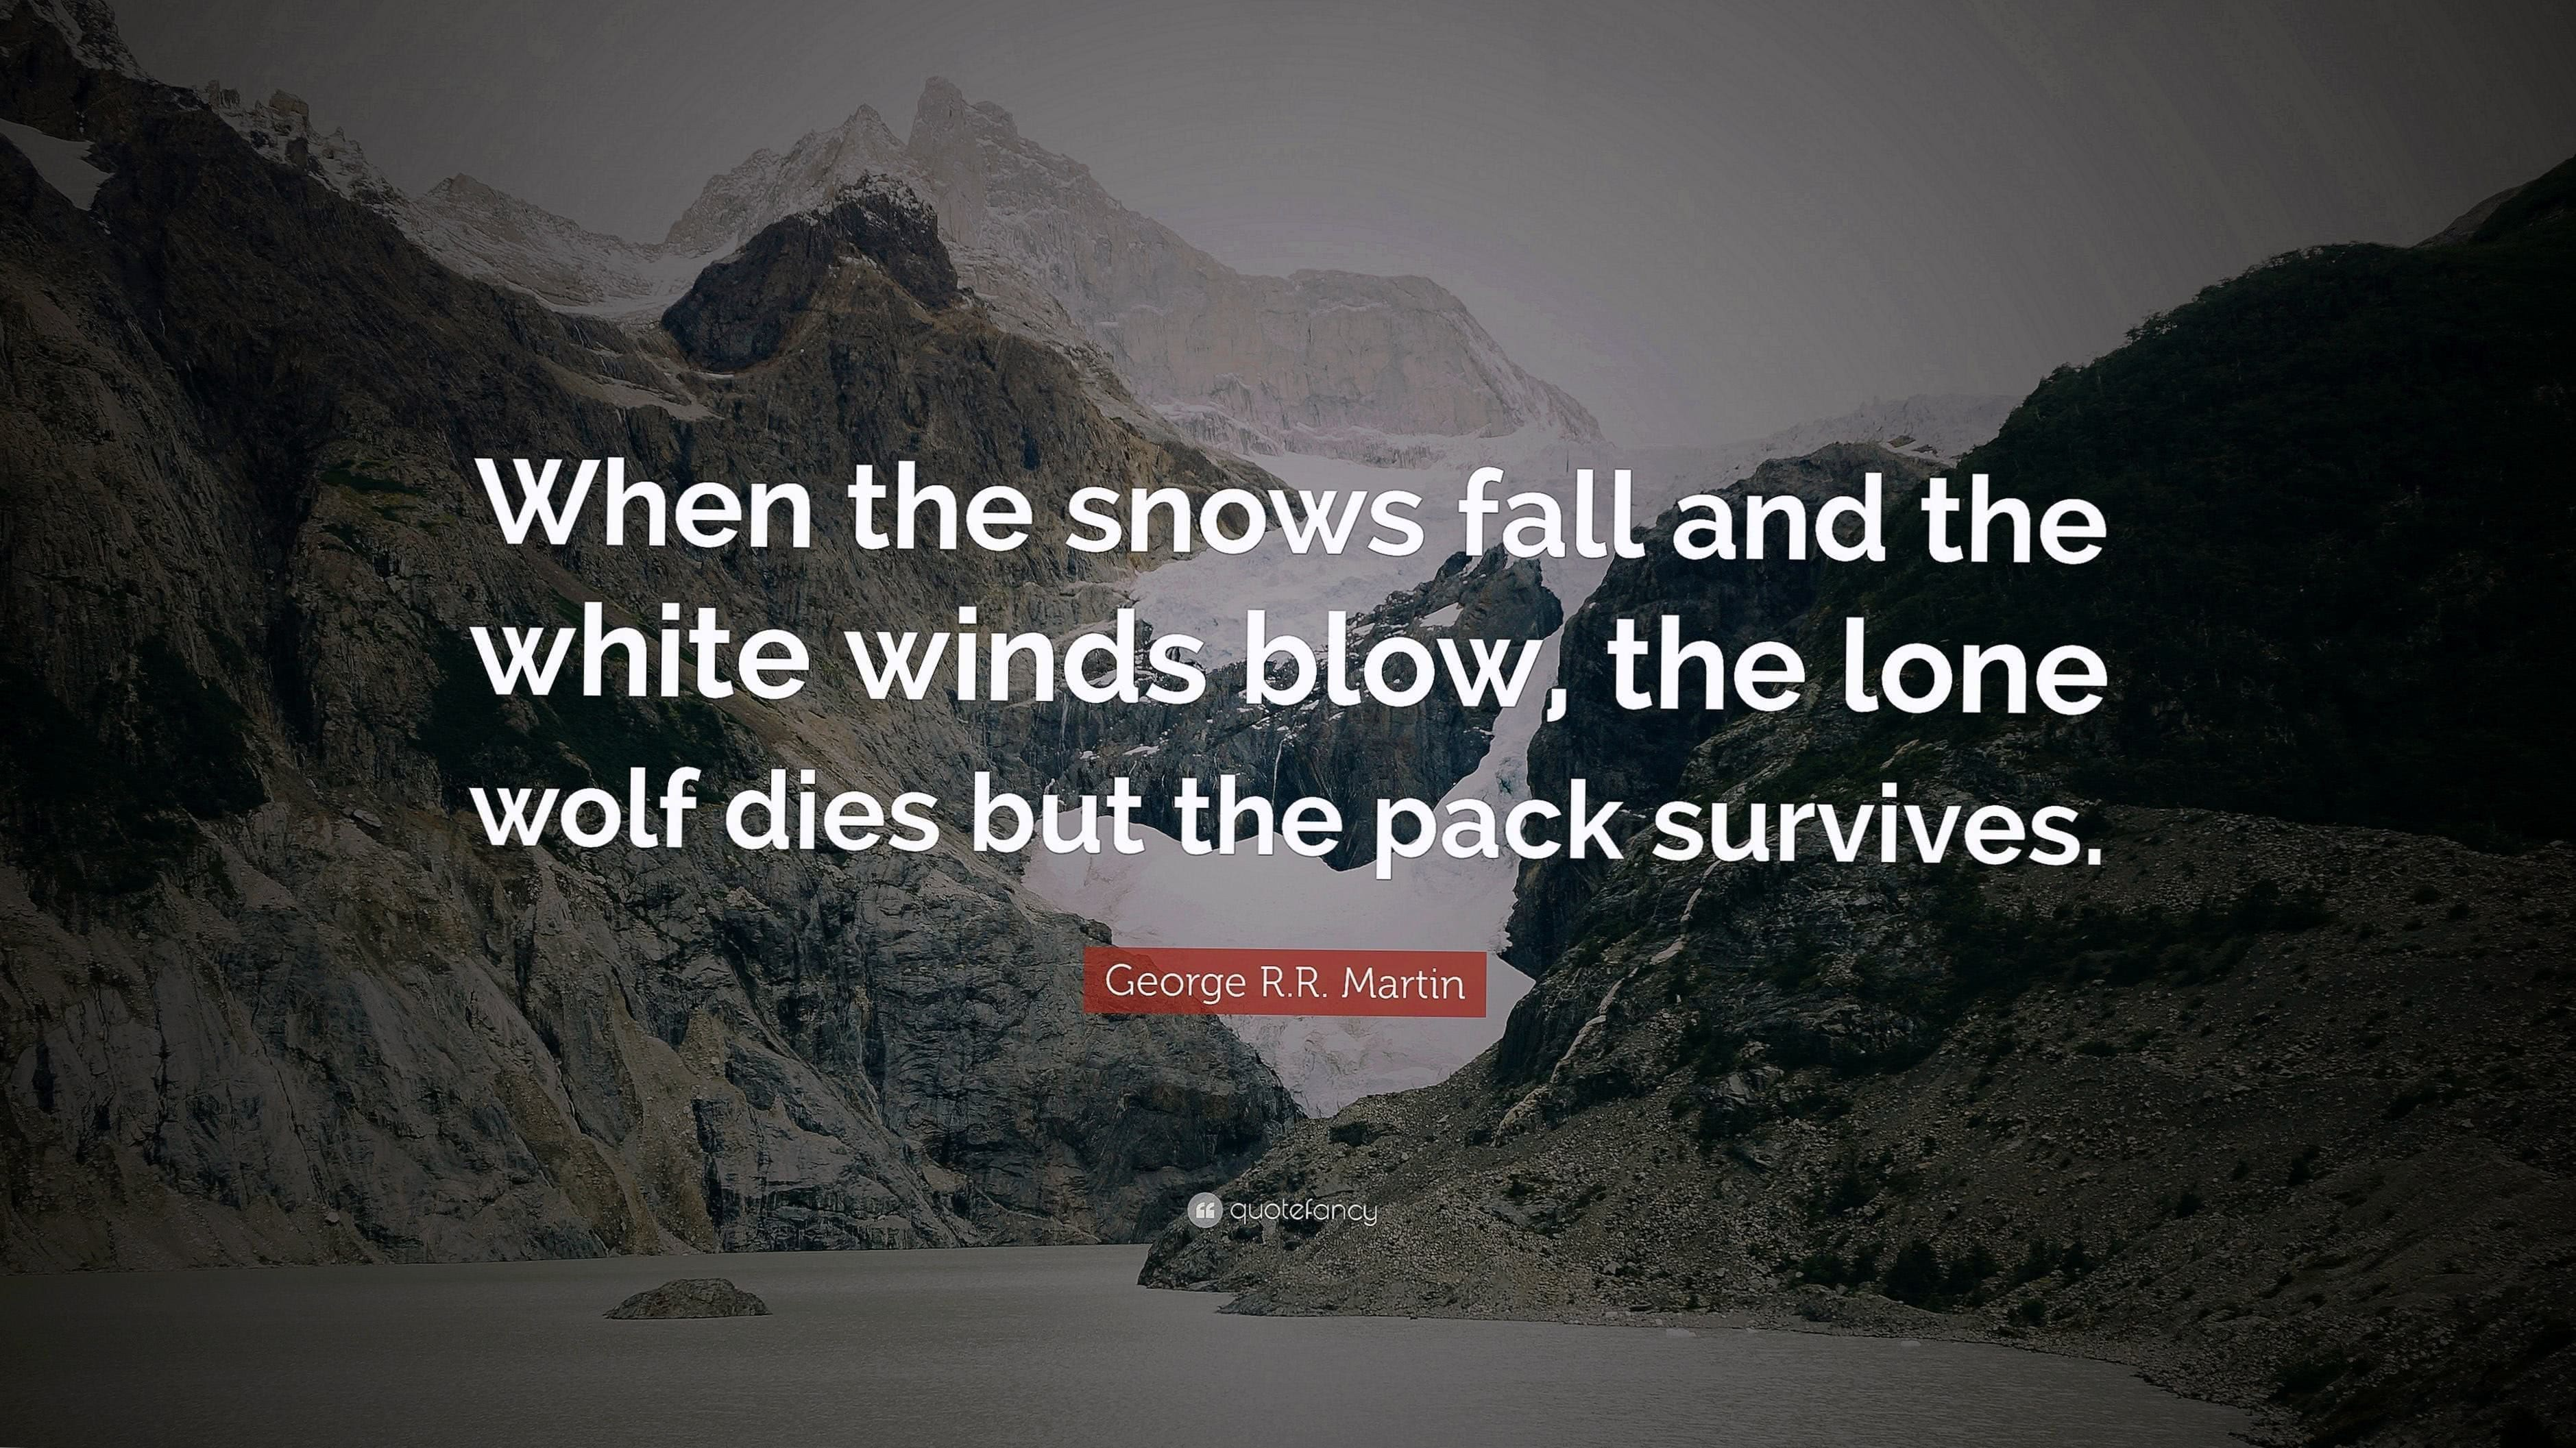 The Lone Wolf Dies But The Pack Survives Wallpaper